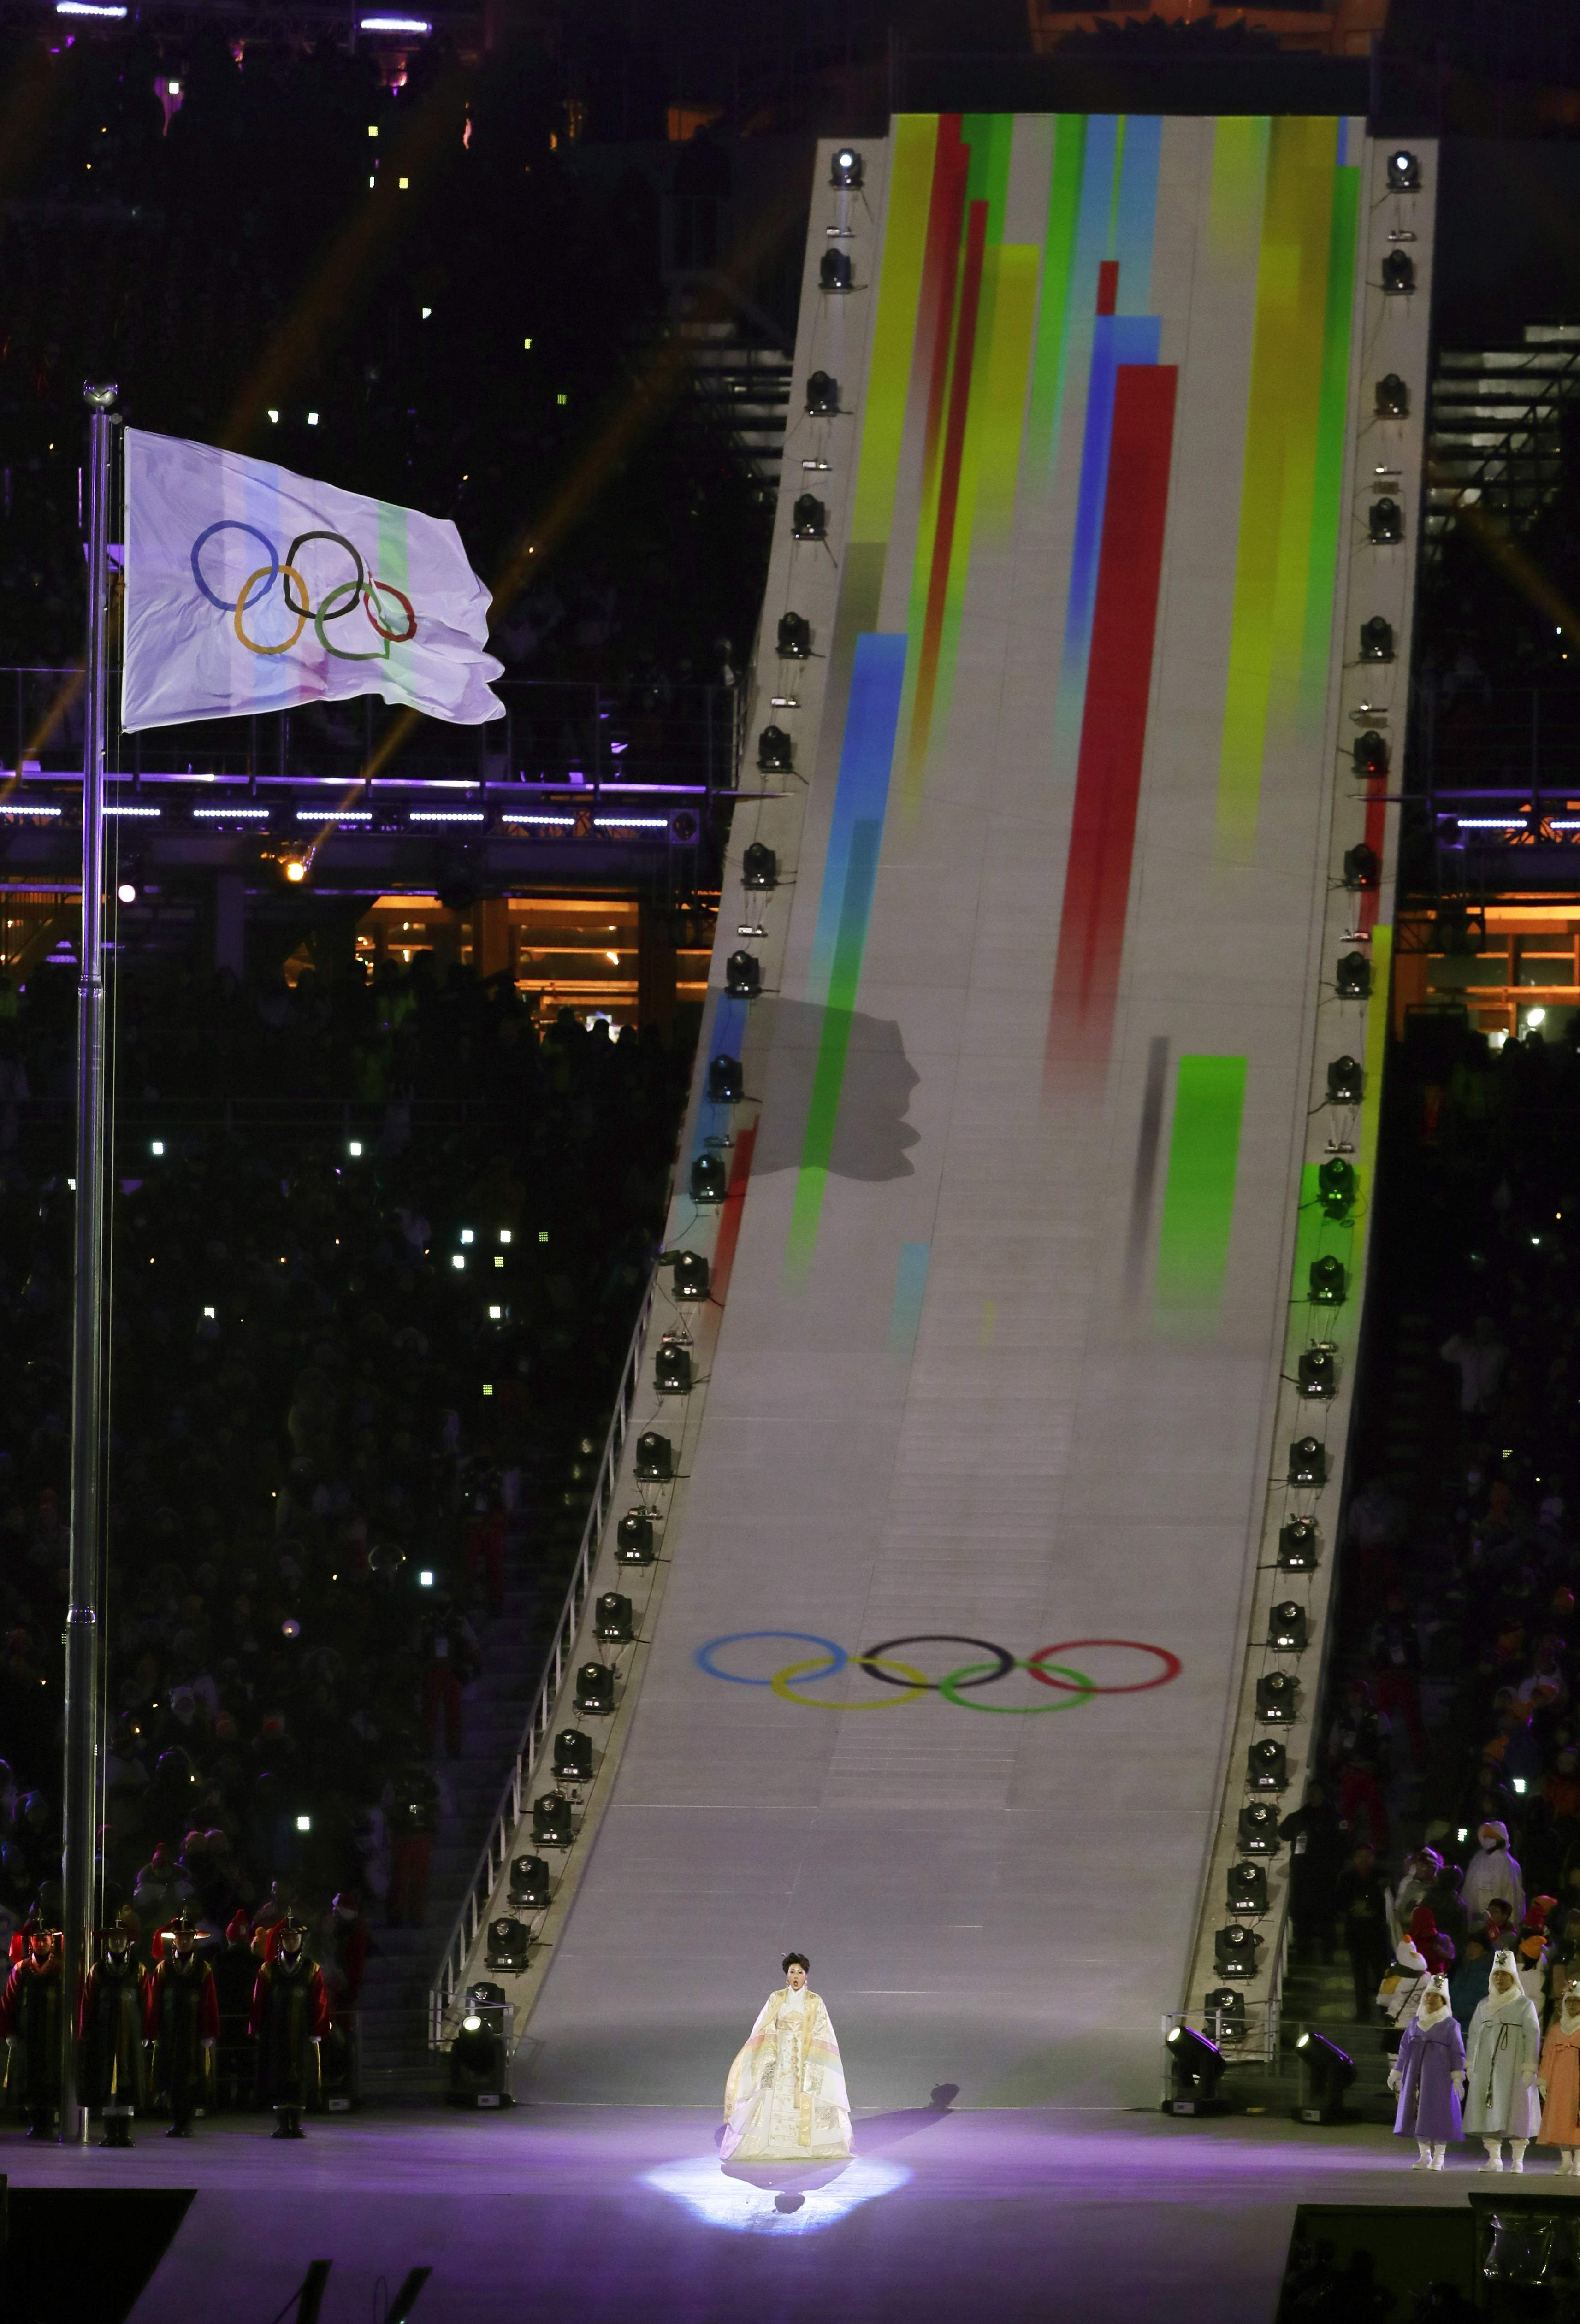 The Olympic flag is raised during the opening ceremony of the 2018 Winter Olympics in Pyeongchang, South Korea, Friday, Feb. 9, 2018. (AP Photo/Julie Jacobson)